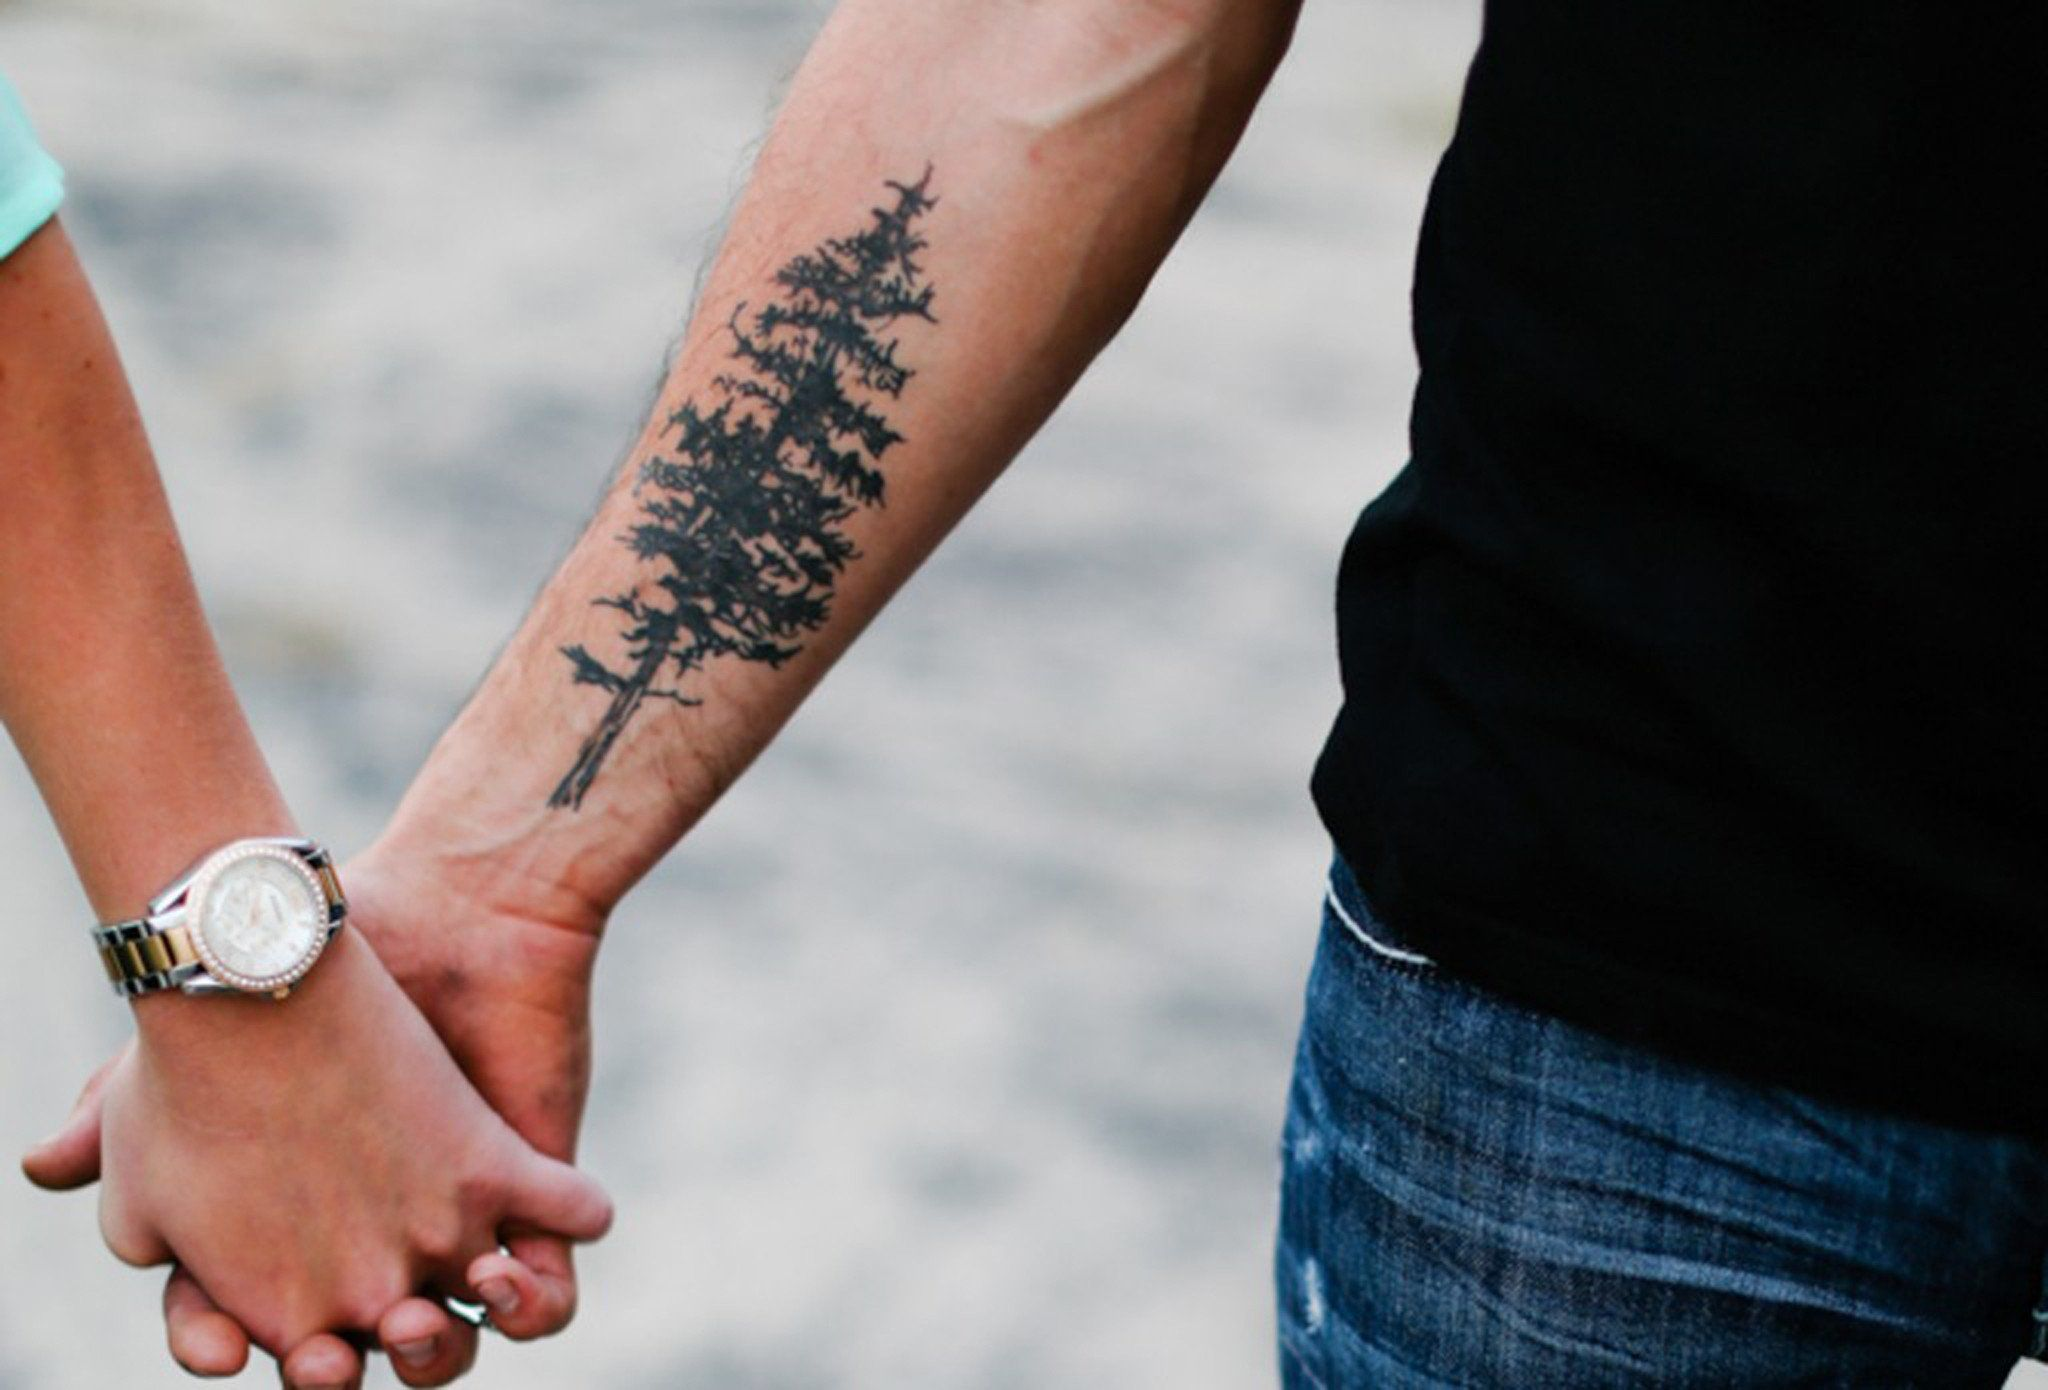 Evergreen Pine Tree Forearm Tattoo Ideas for Men Couple at